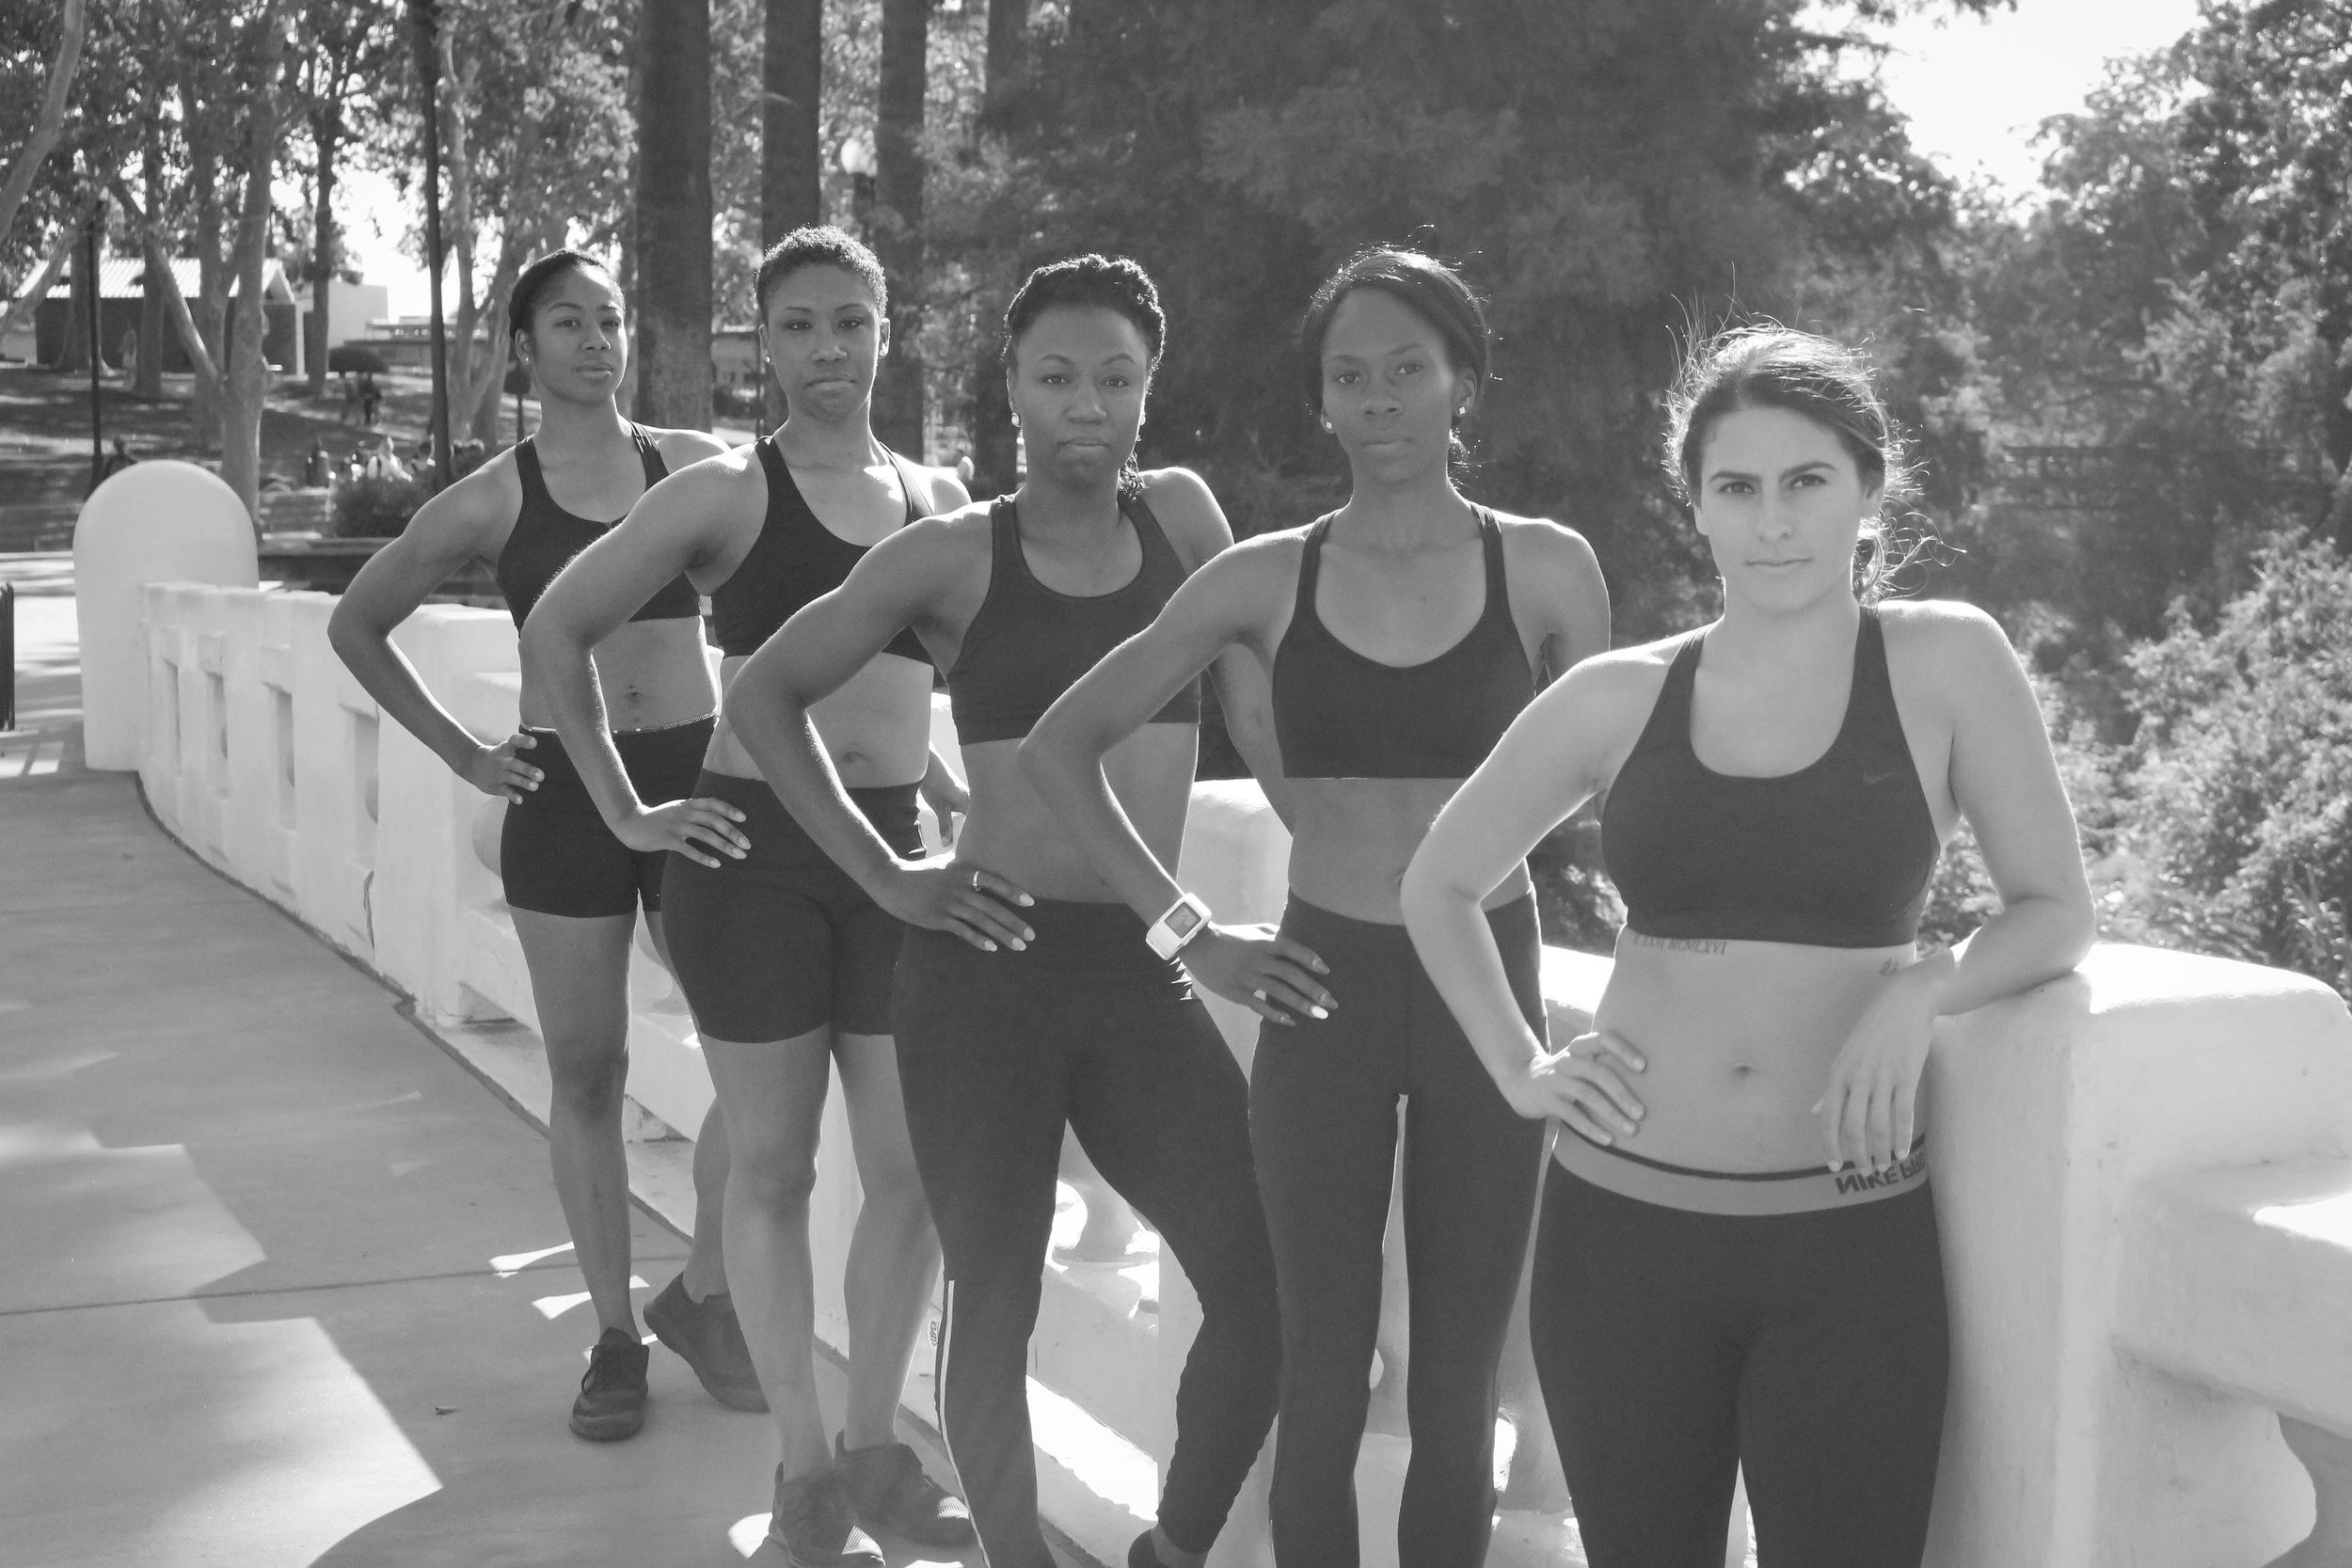 Women #EmbraceStrong on Body Issues